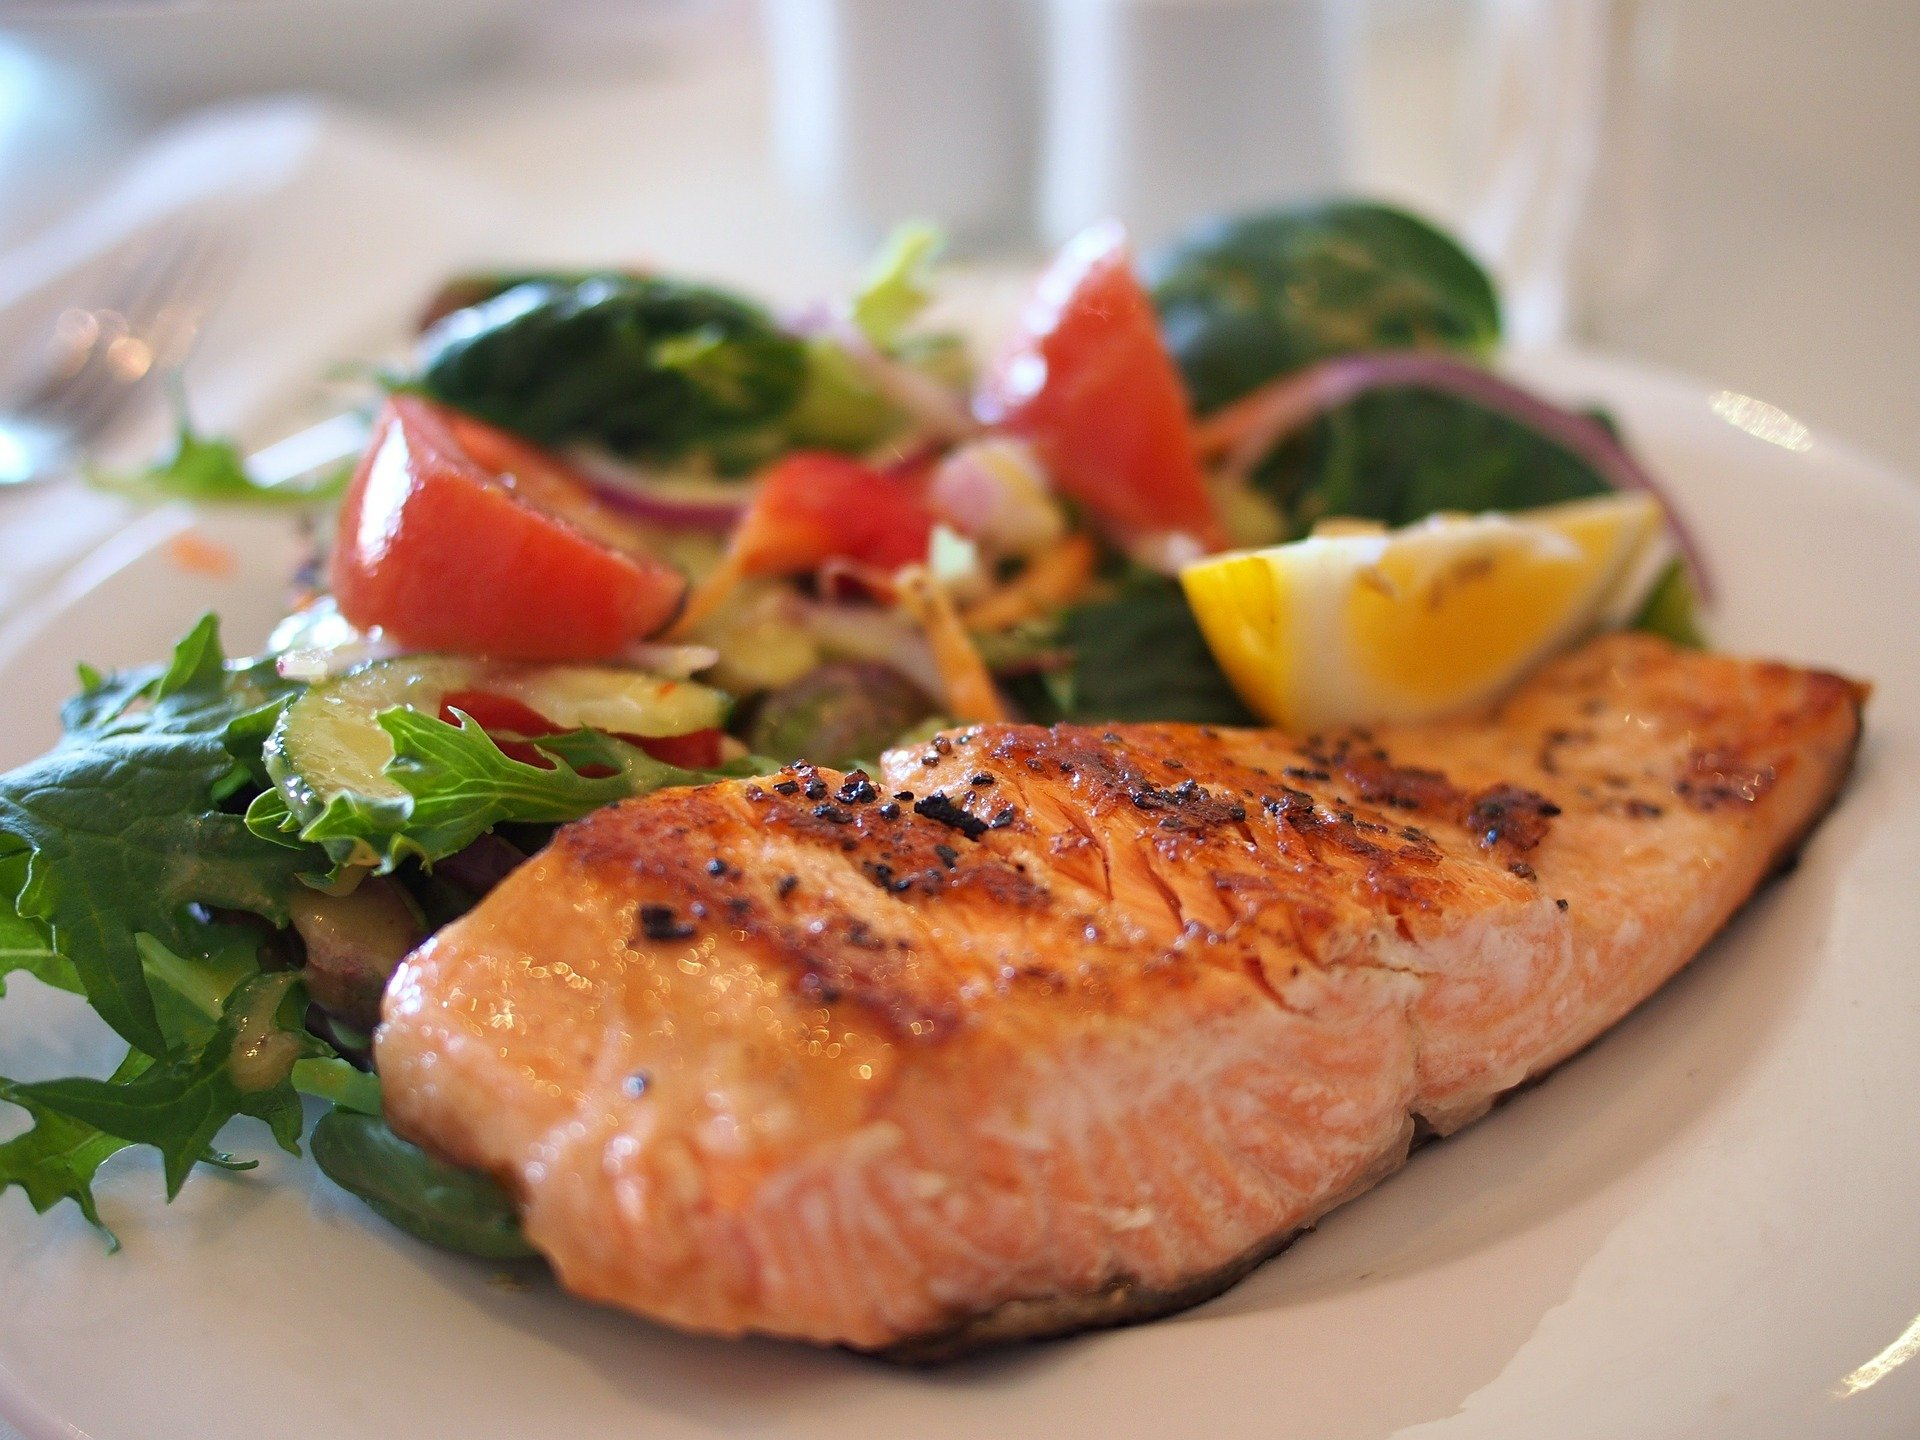 Find out the health consequences of not eating fish for weeks